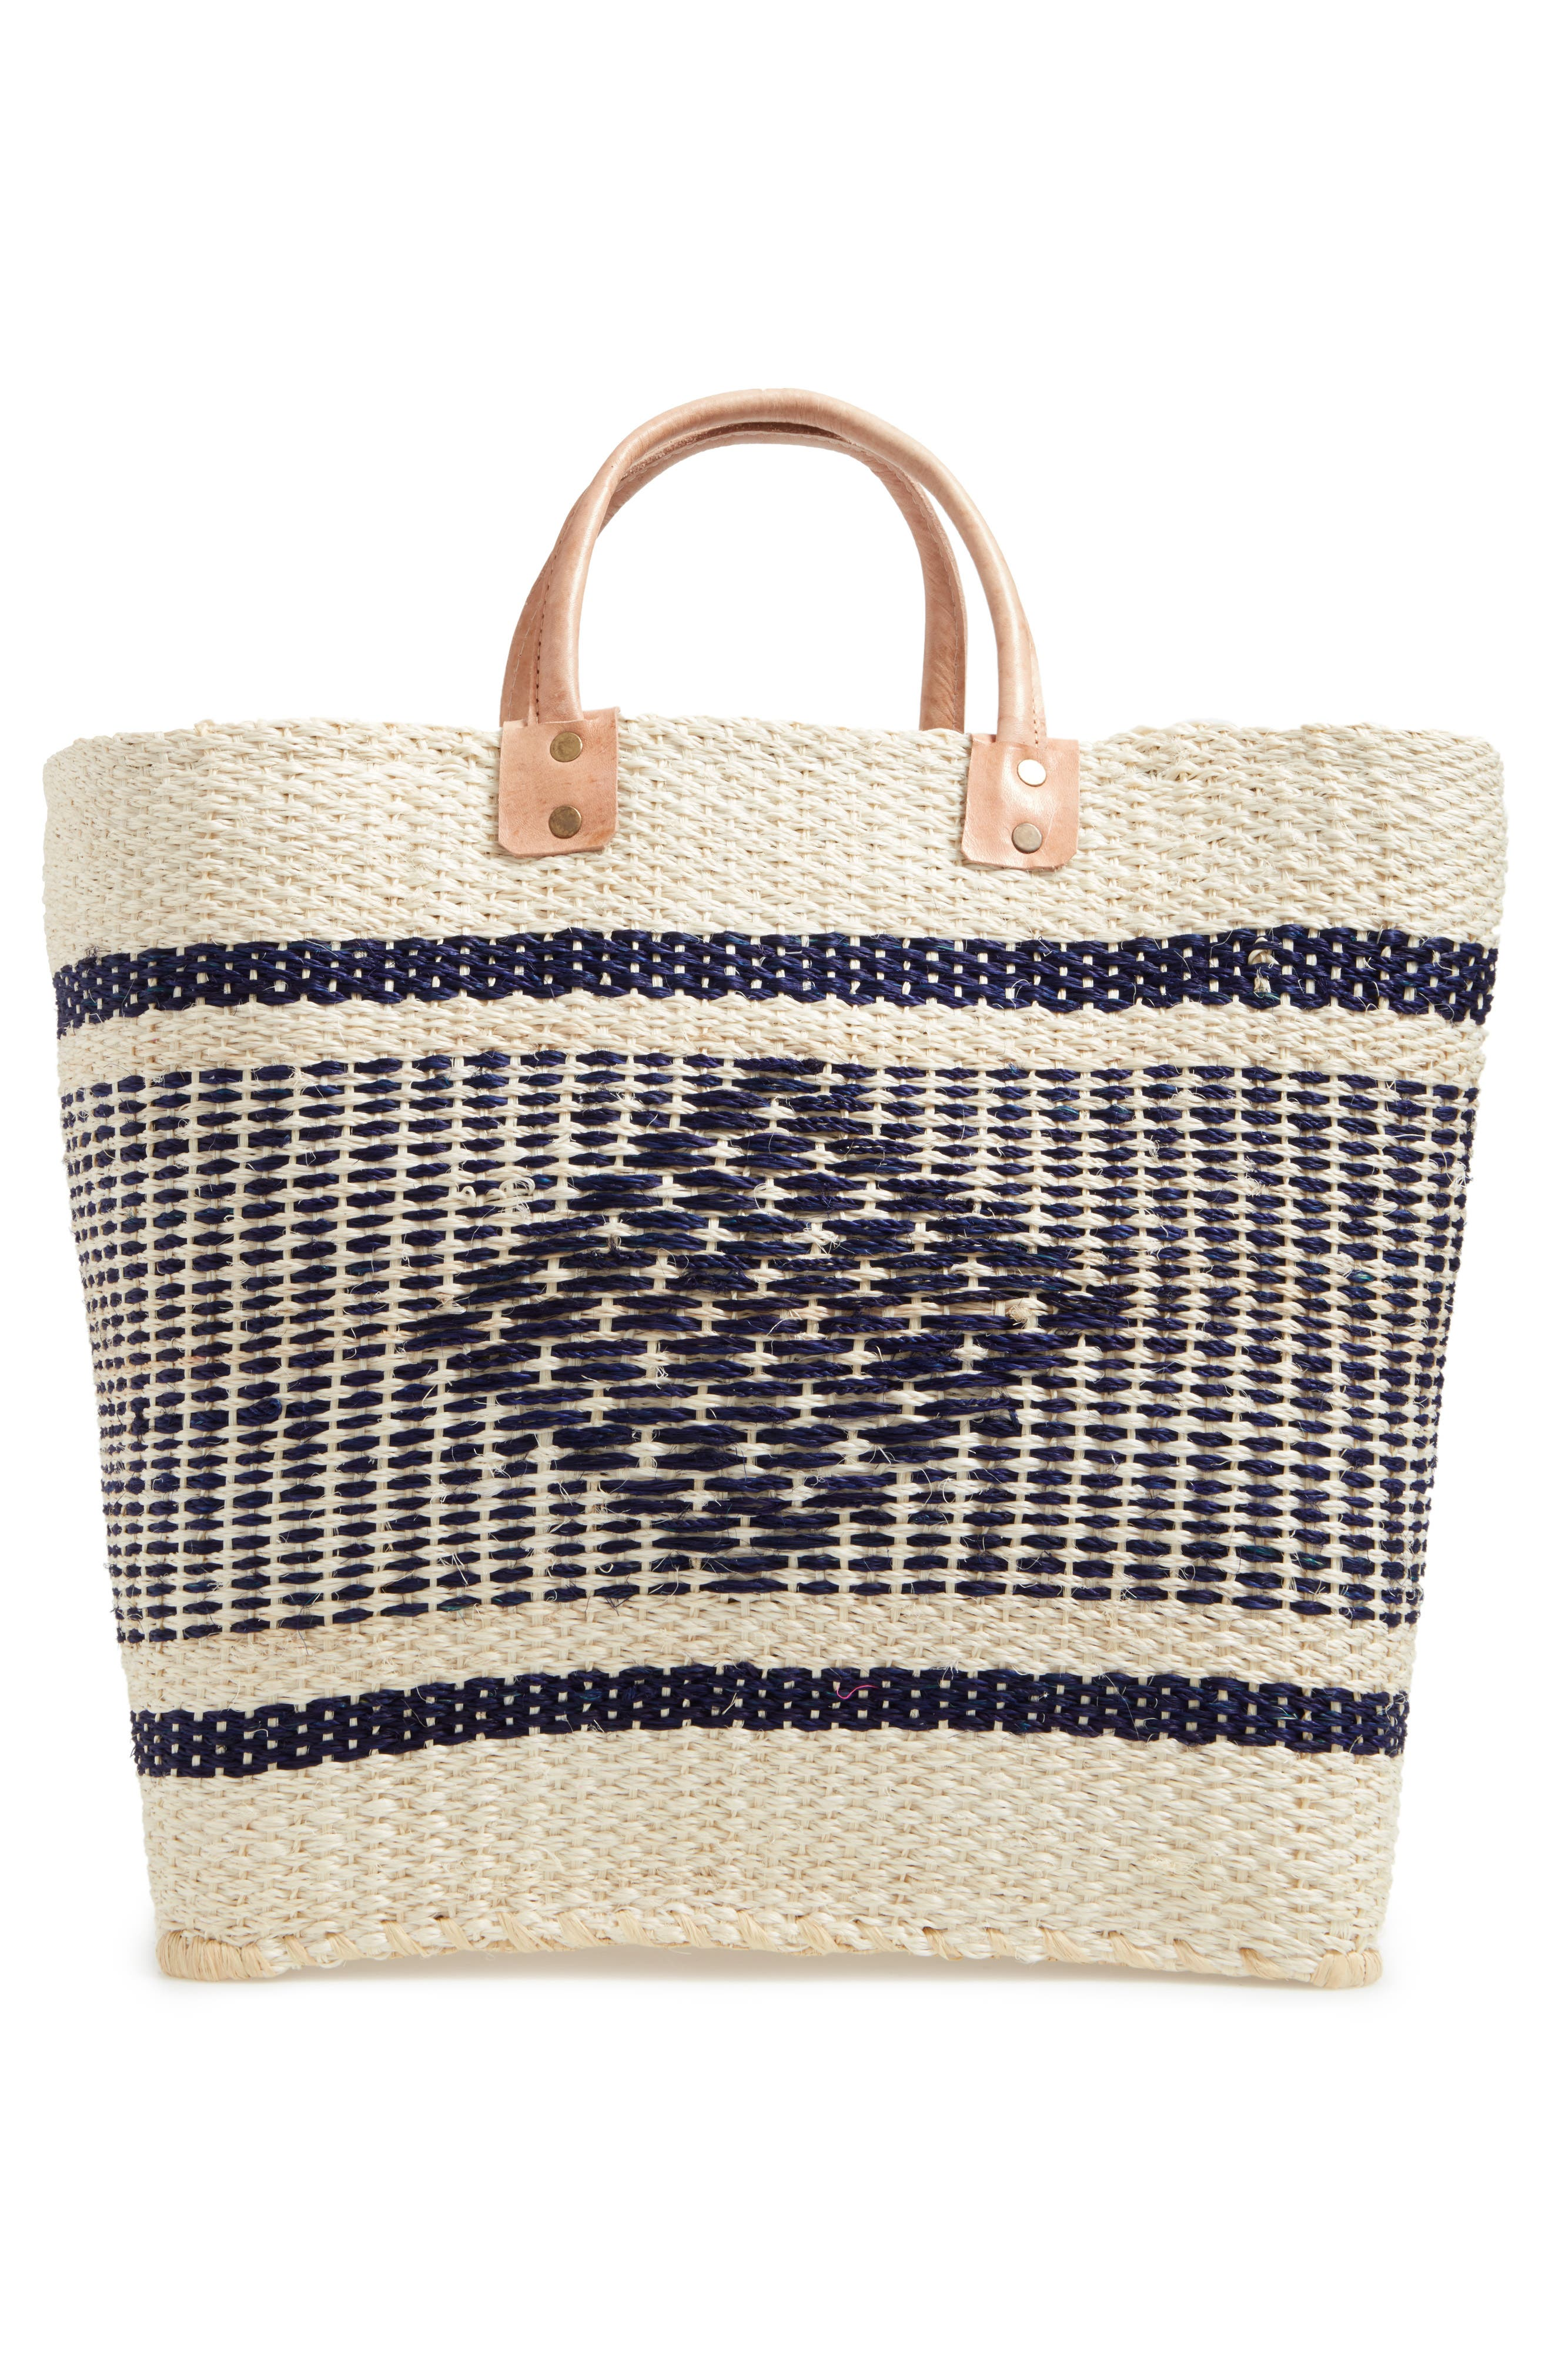 'Ibiza' Woven Tote with Tassel Charms,                             Alternate thumbnail 3, color,                             200